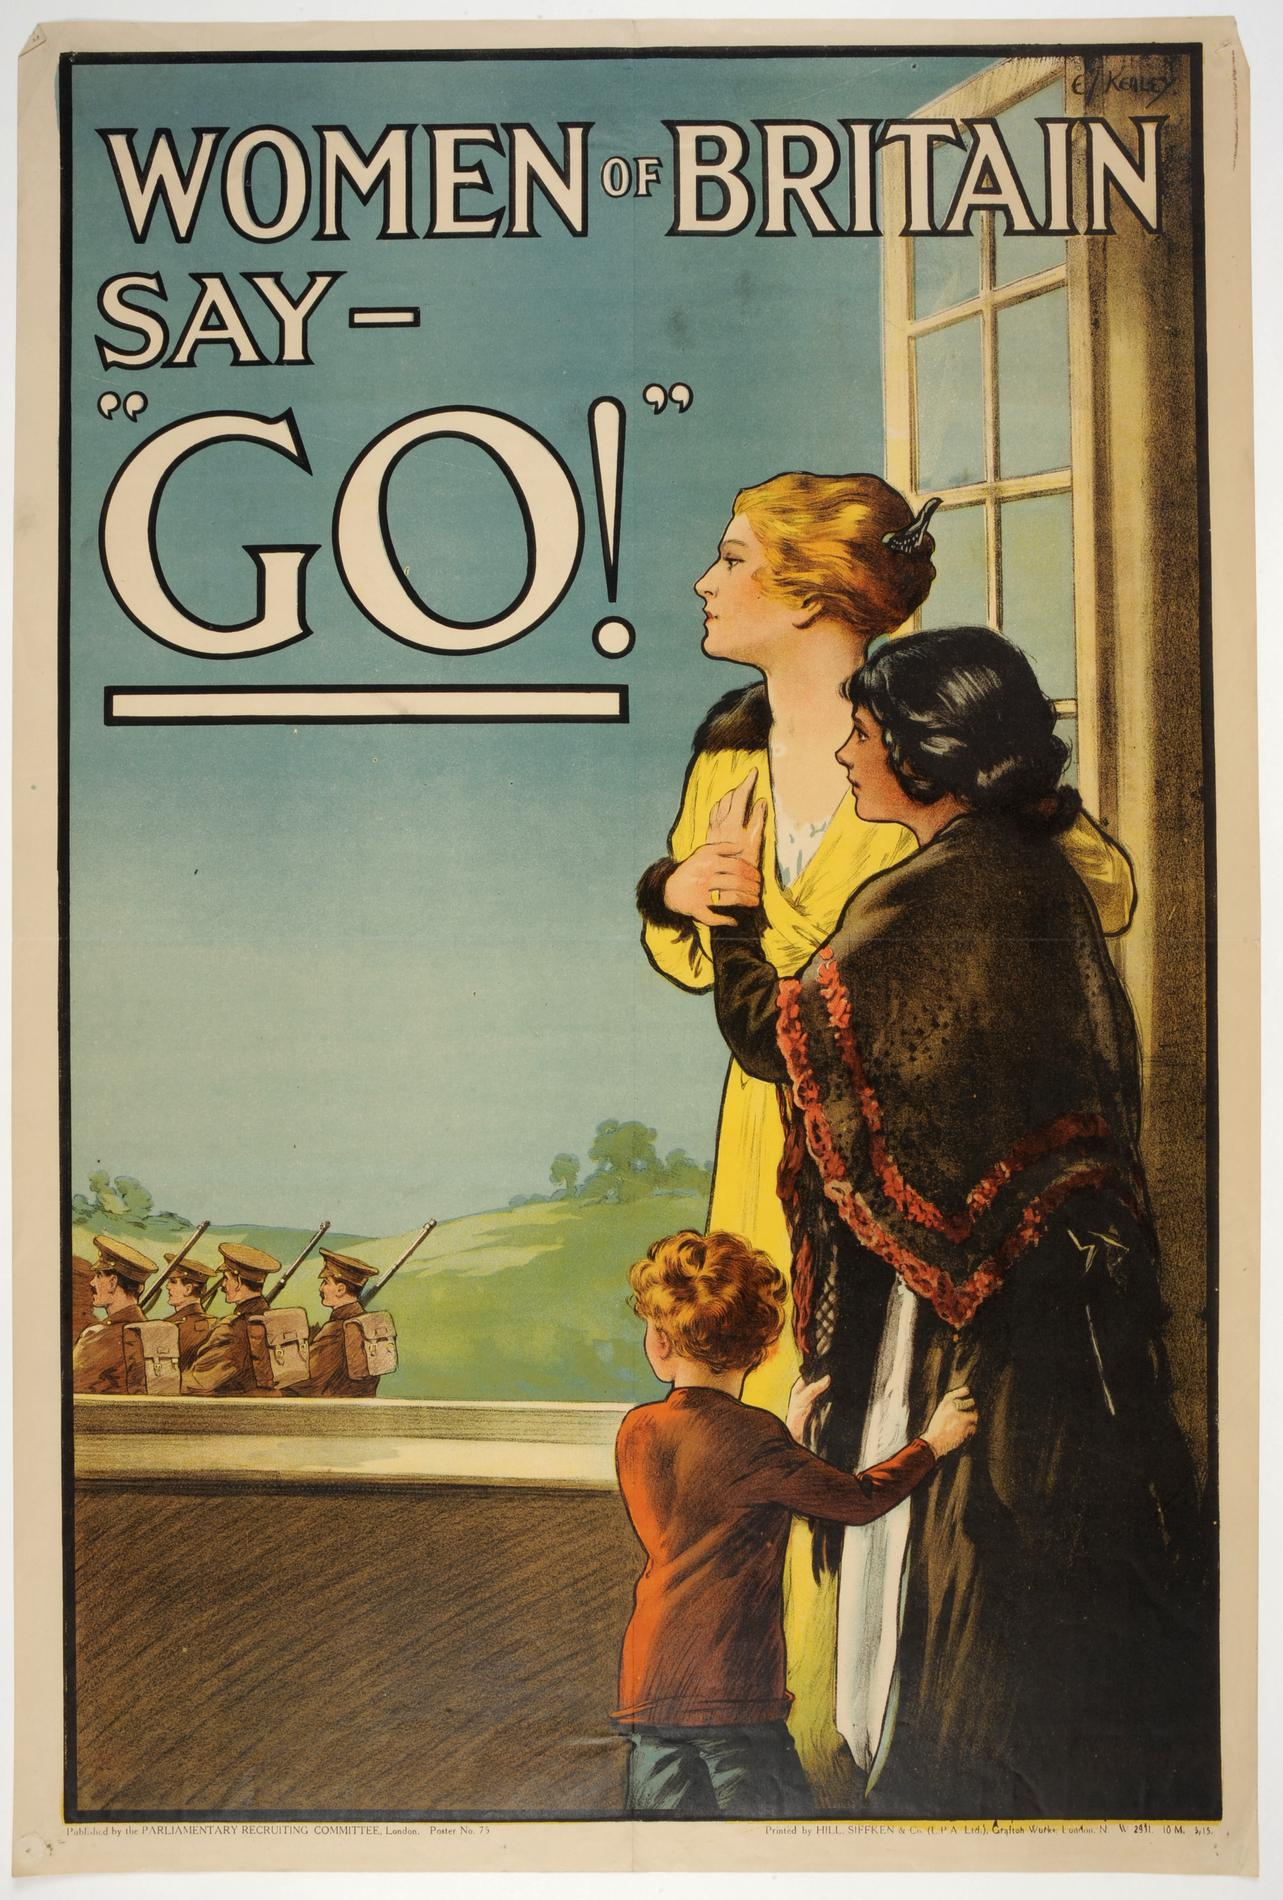 Women in Britain say go! (Poster)